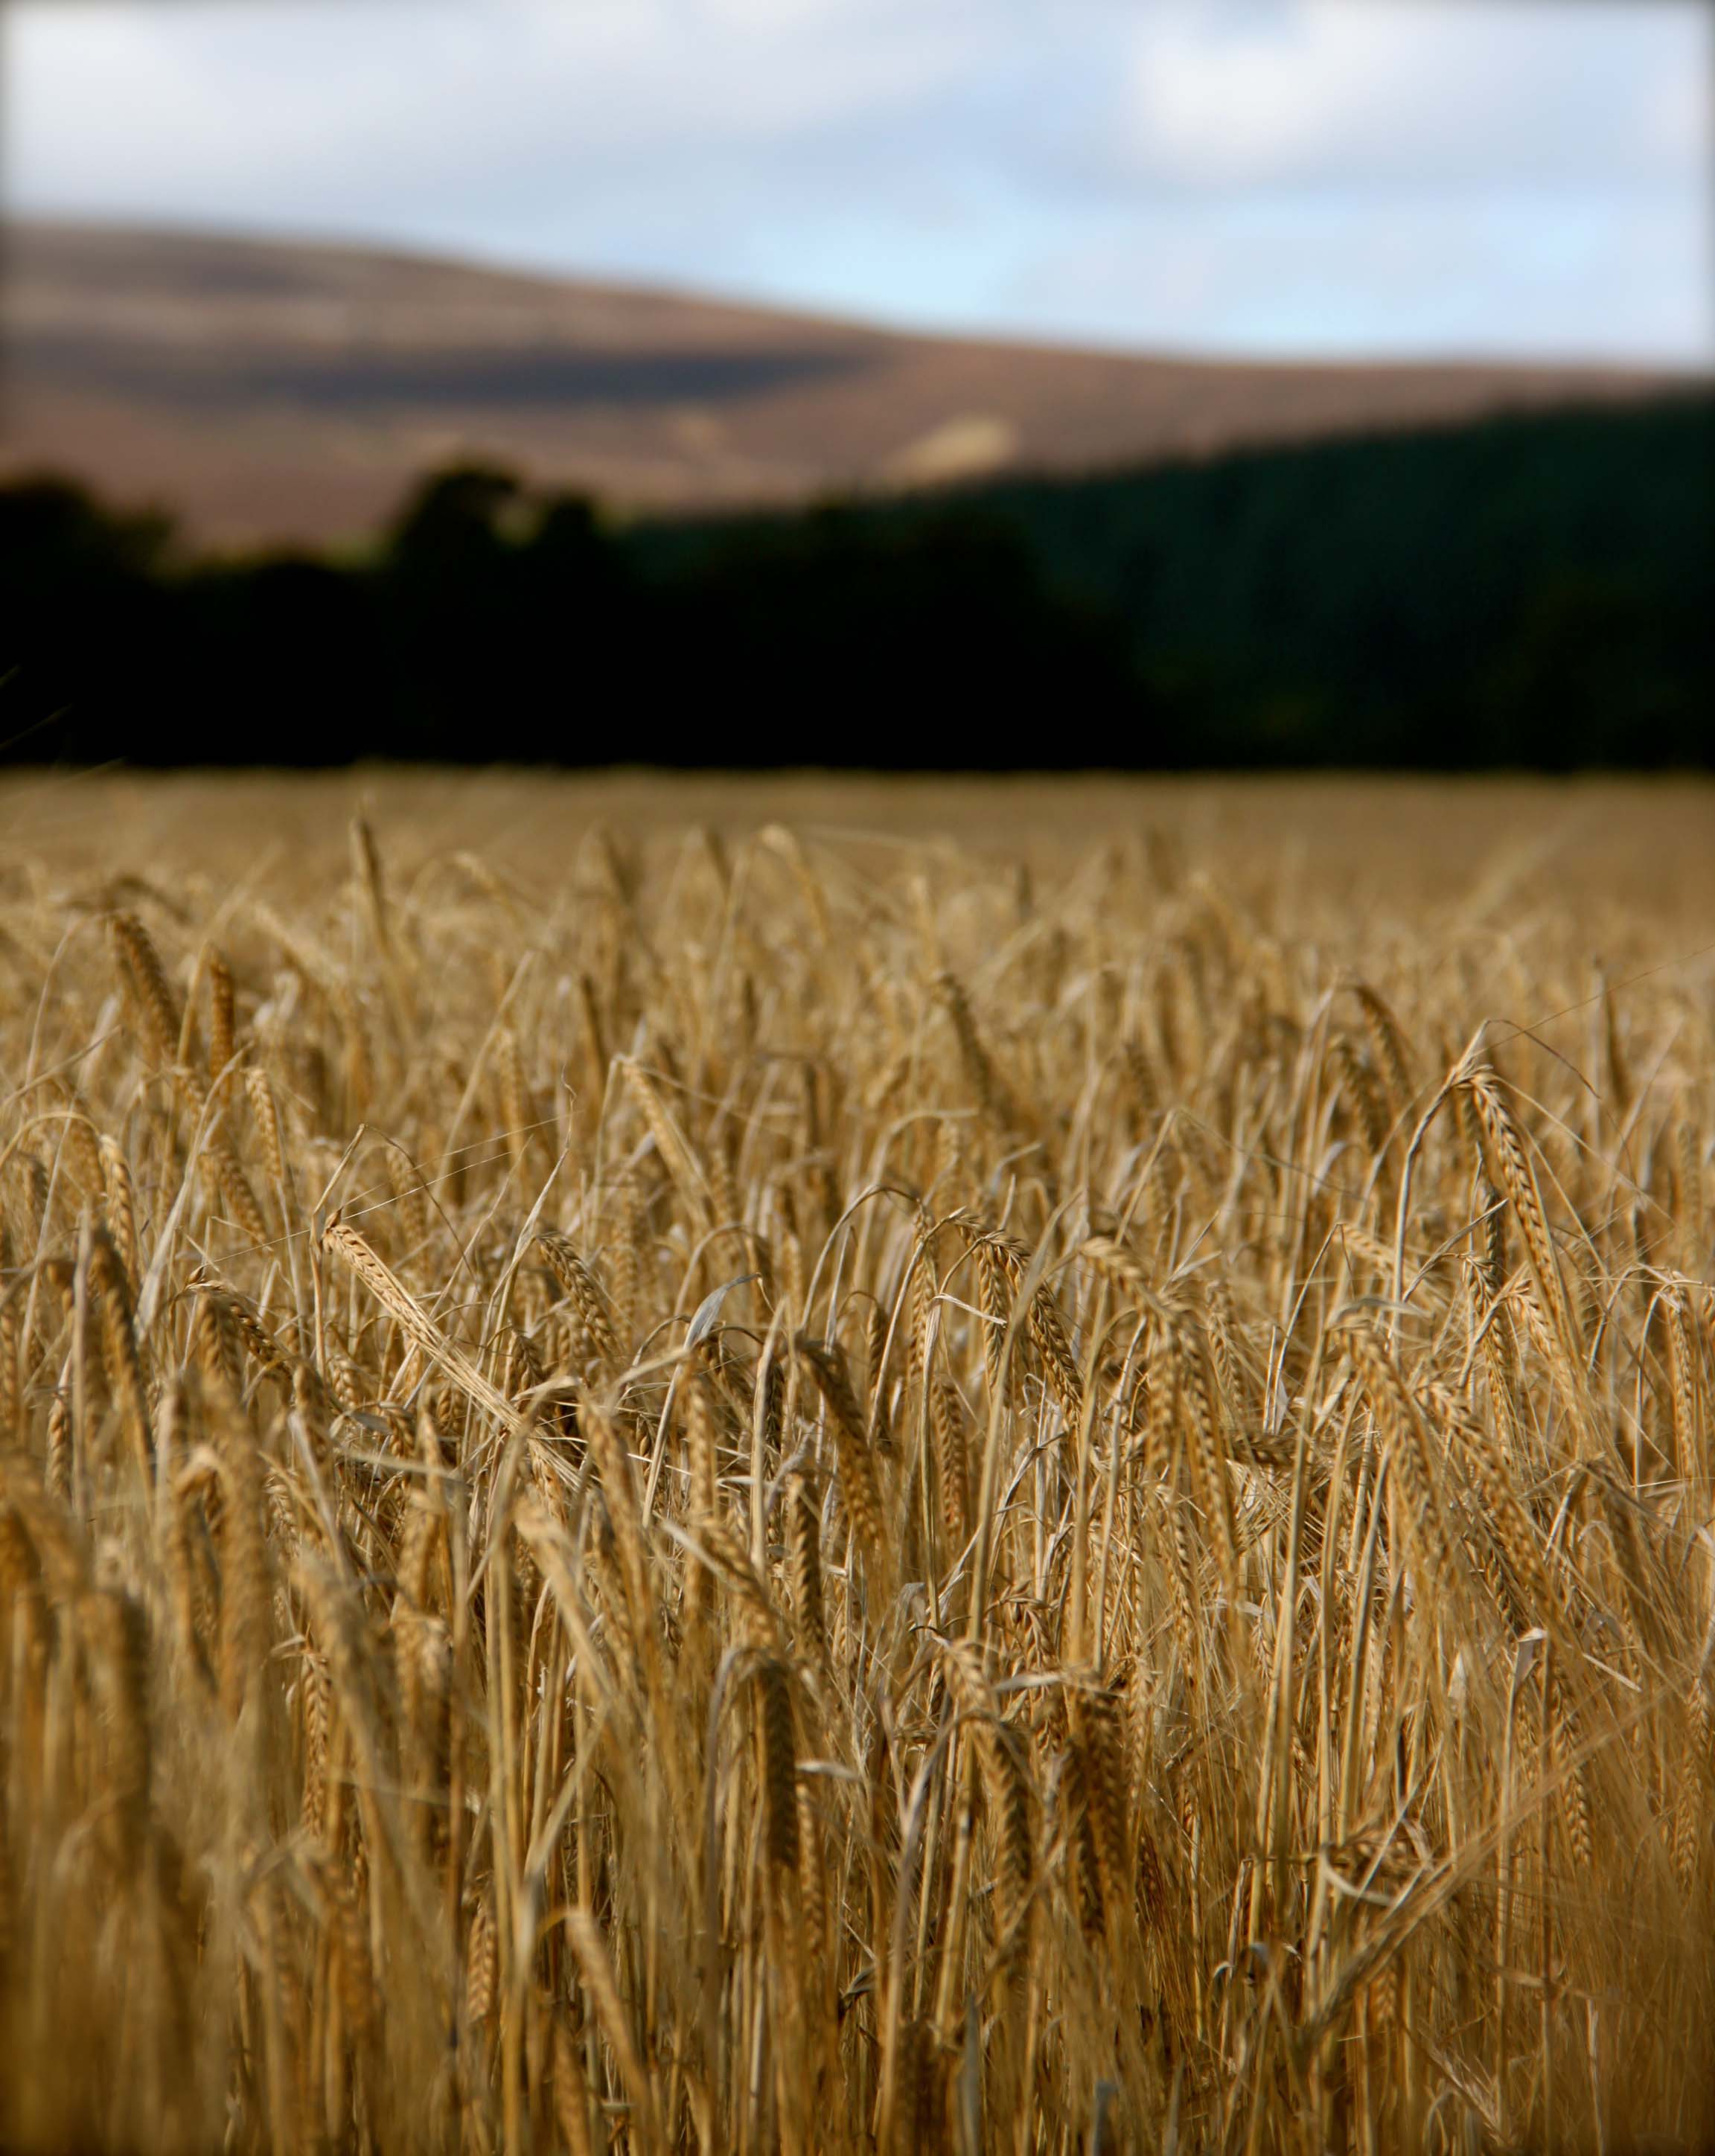 FIELDS OF BARLEY PHOTO BY NIKKI BRAND 2012 4